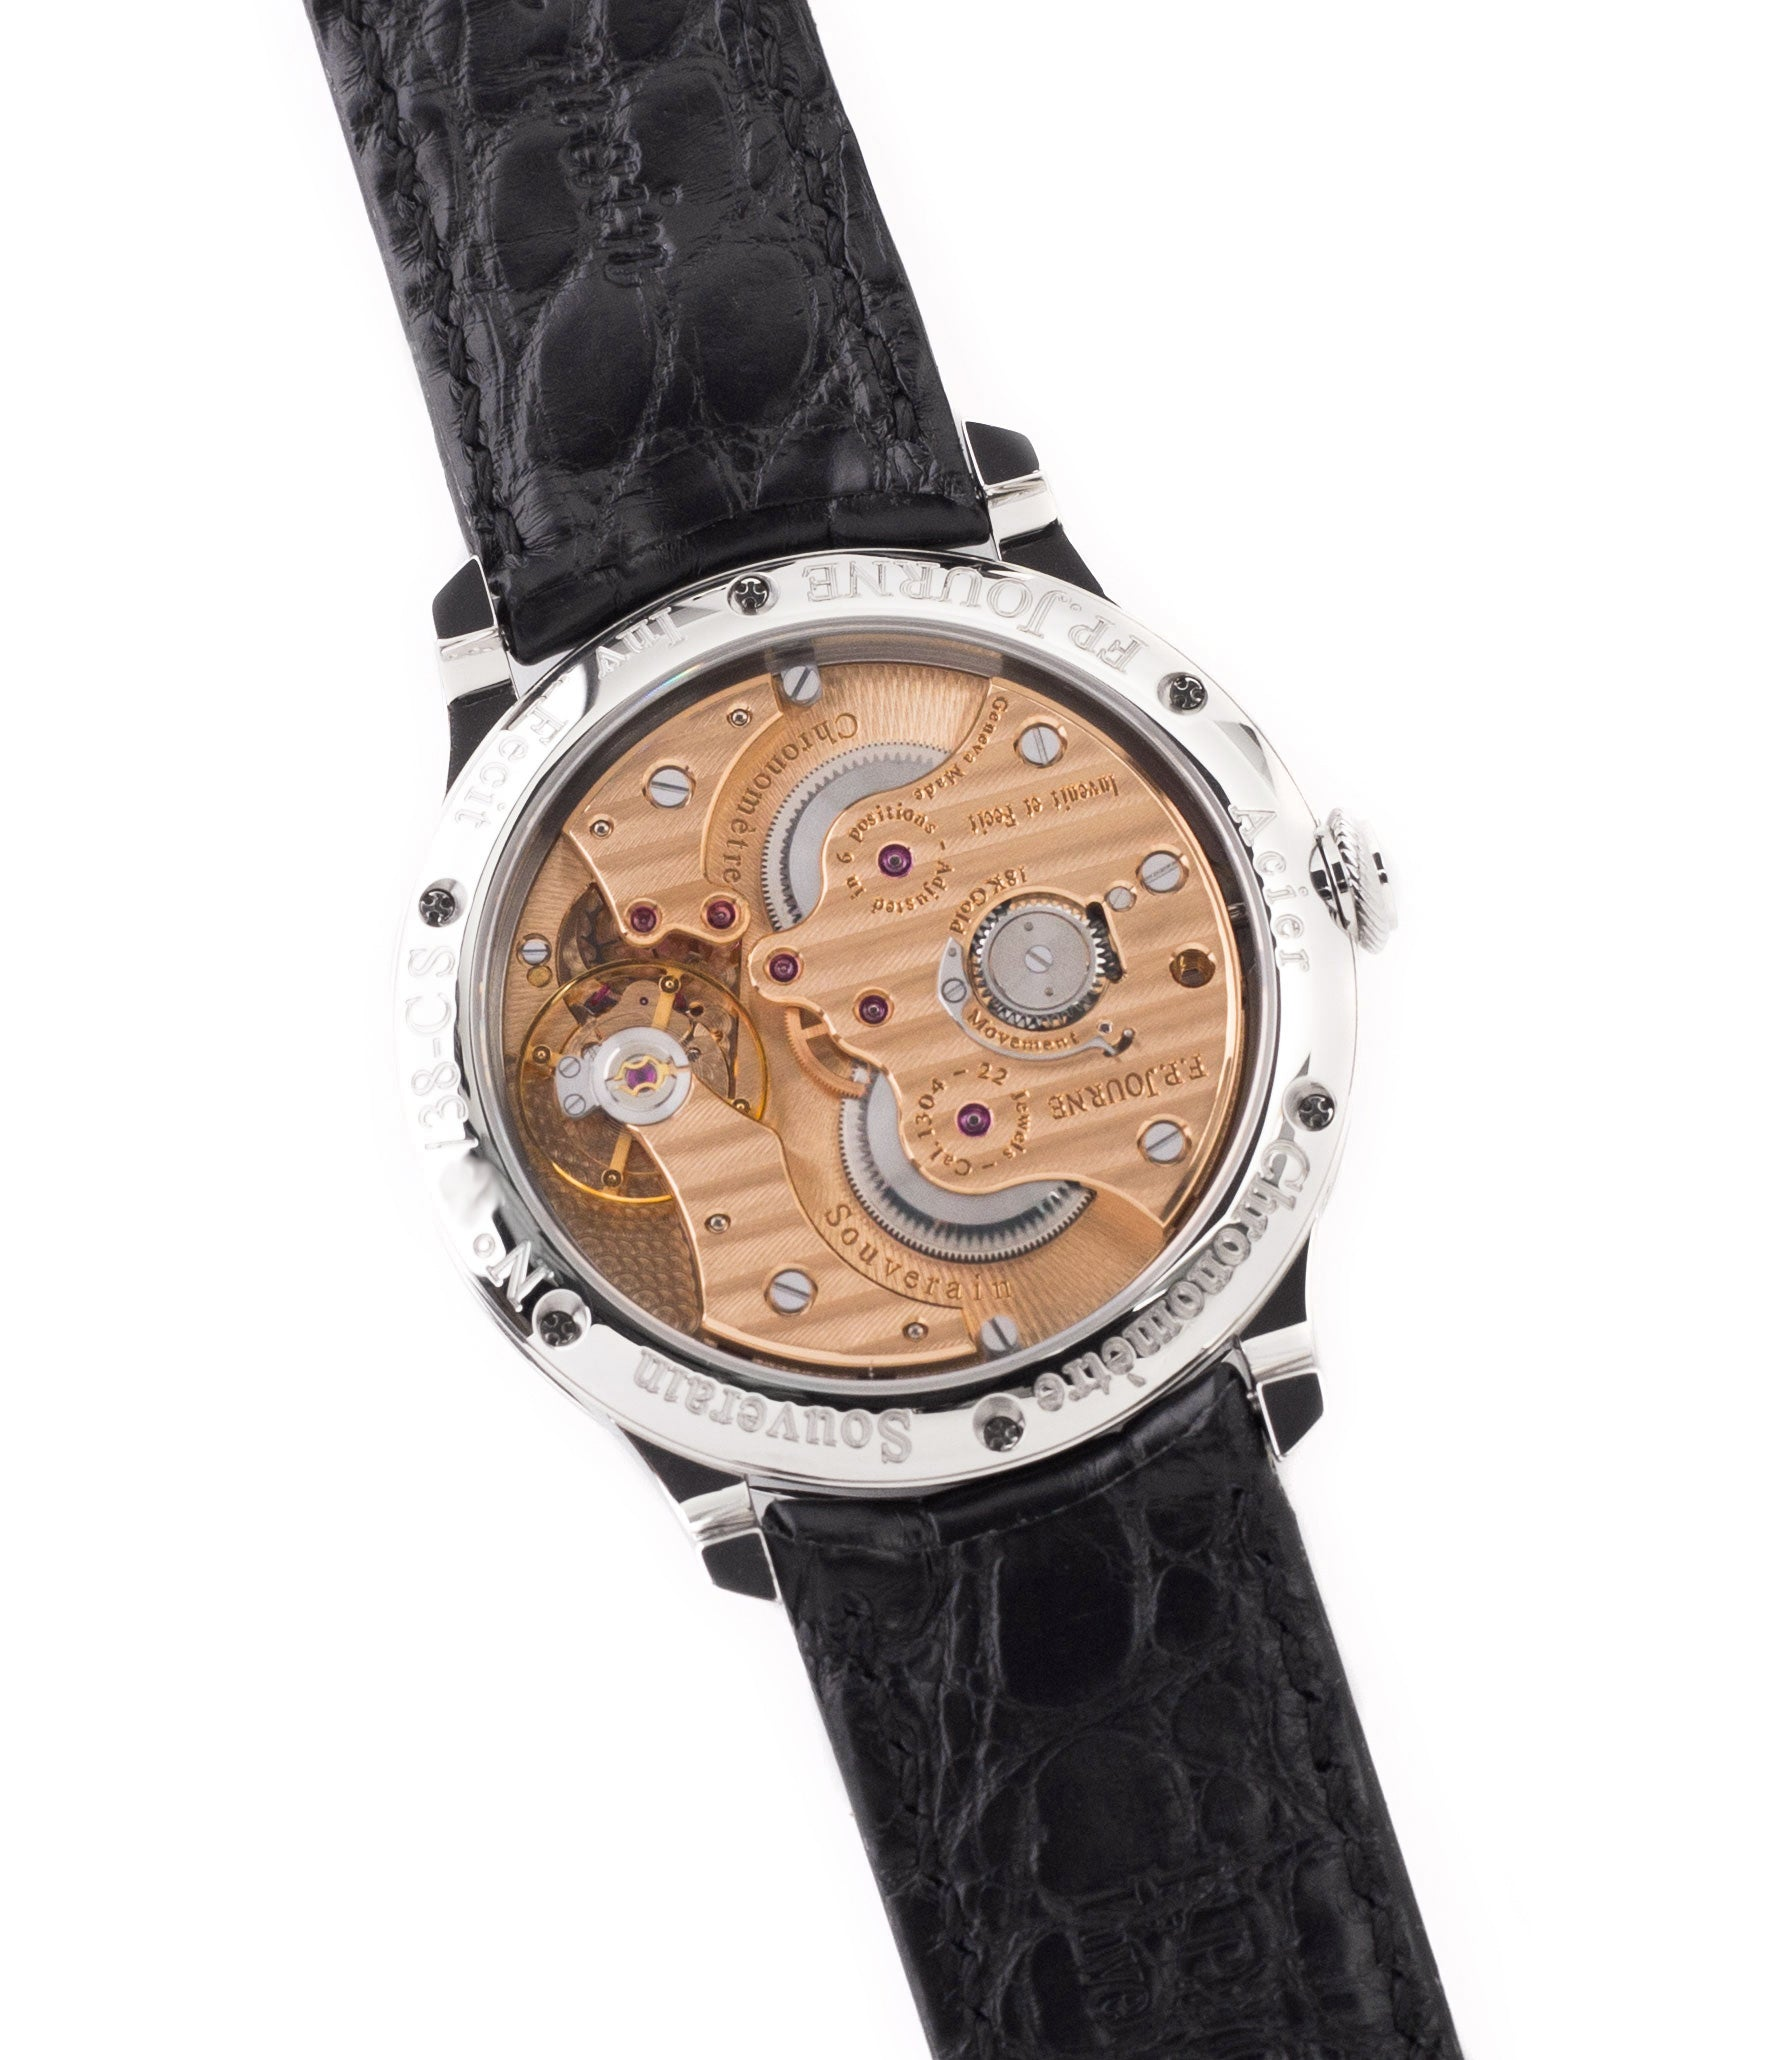 Calibre 1304 manual-winding F. P. Journe Chronomètre Souverain Steel 38 mm Limited Edition Set for sale online at A Collected Man London approved UK retailer independent watchmakers